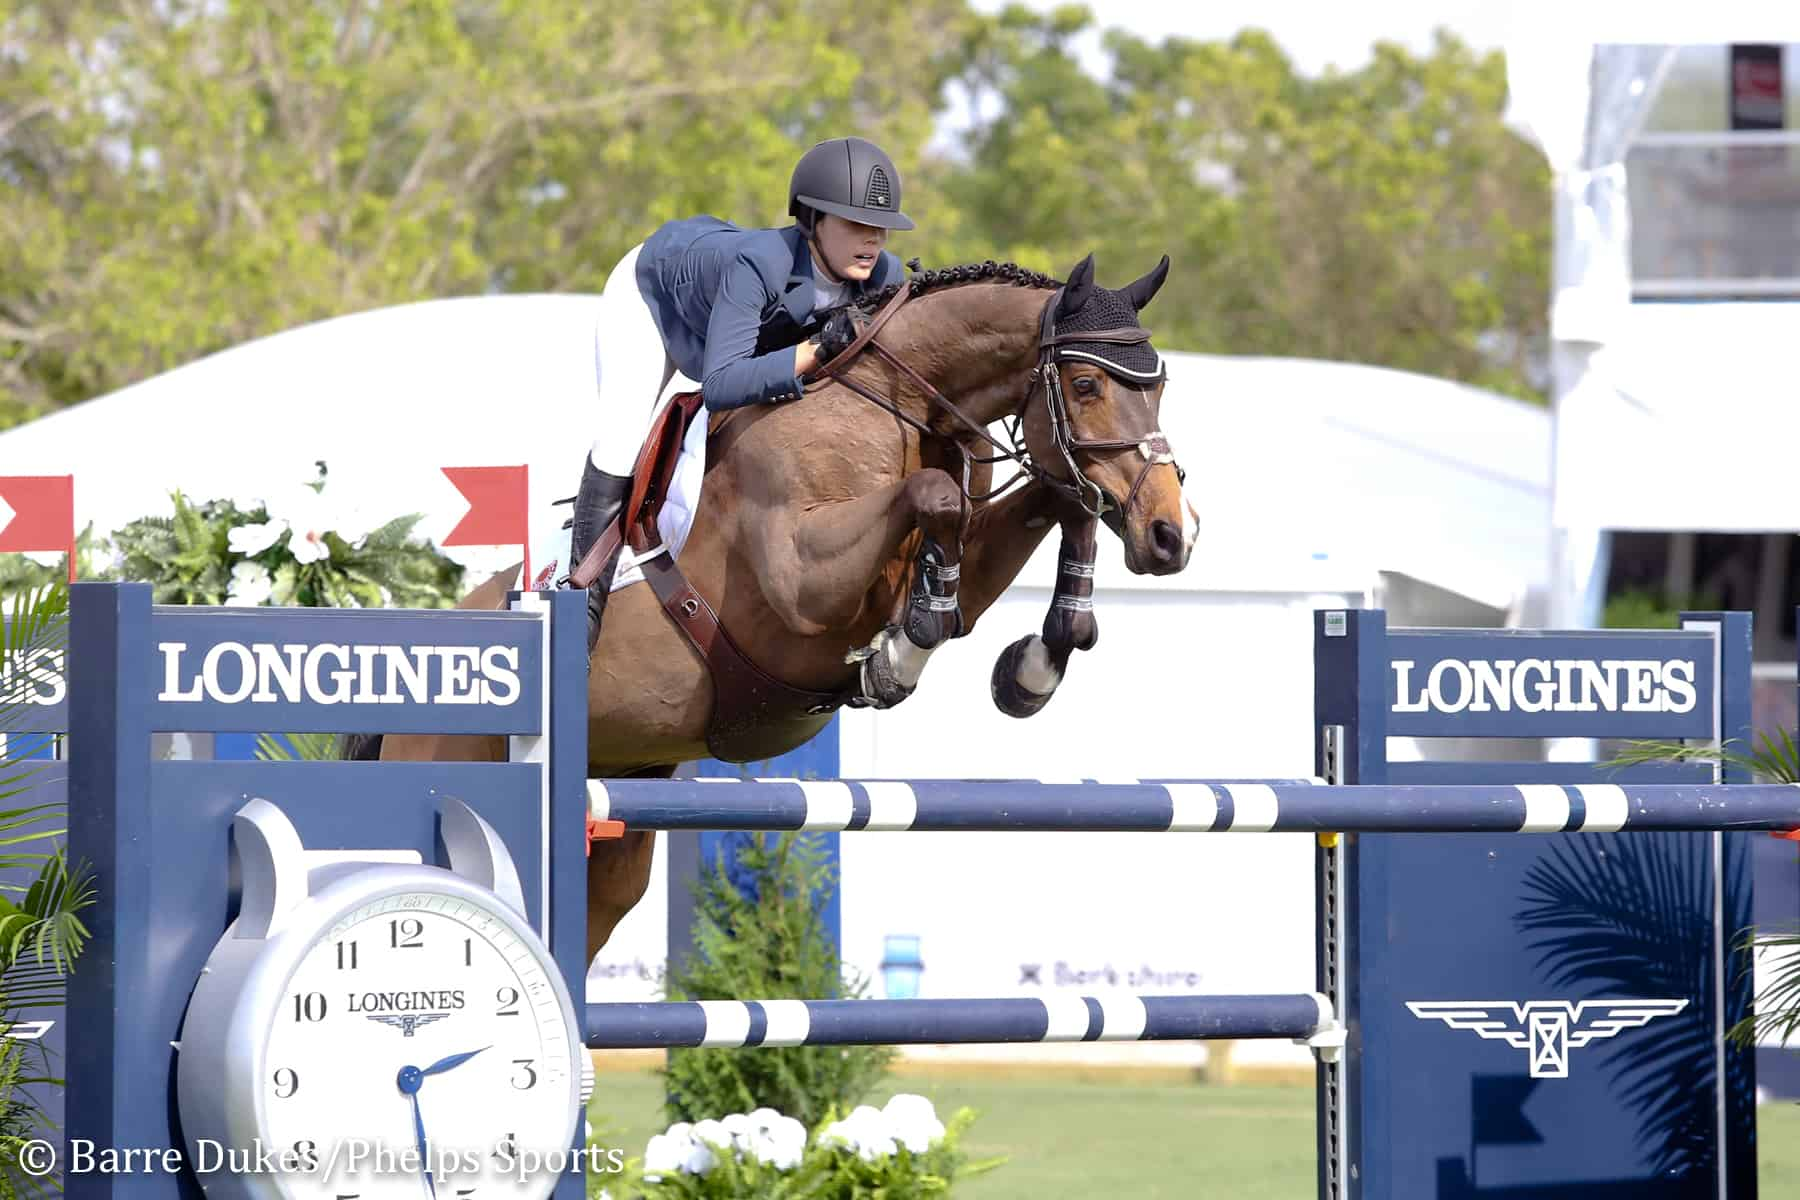 Karen Polle and With Wings at the 2019 Palm Beach Masters